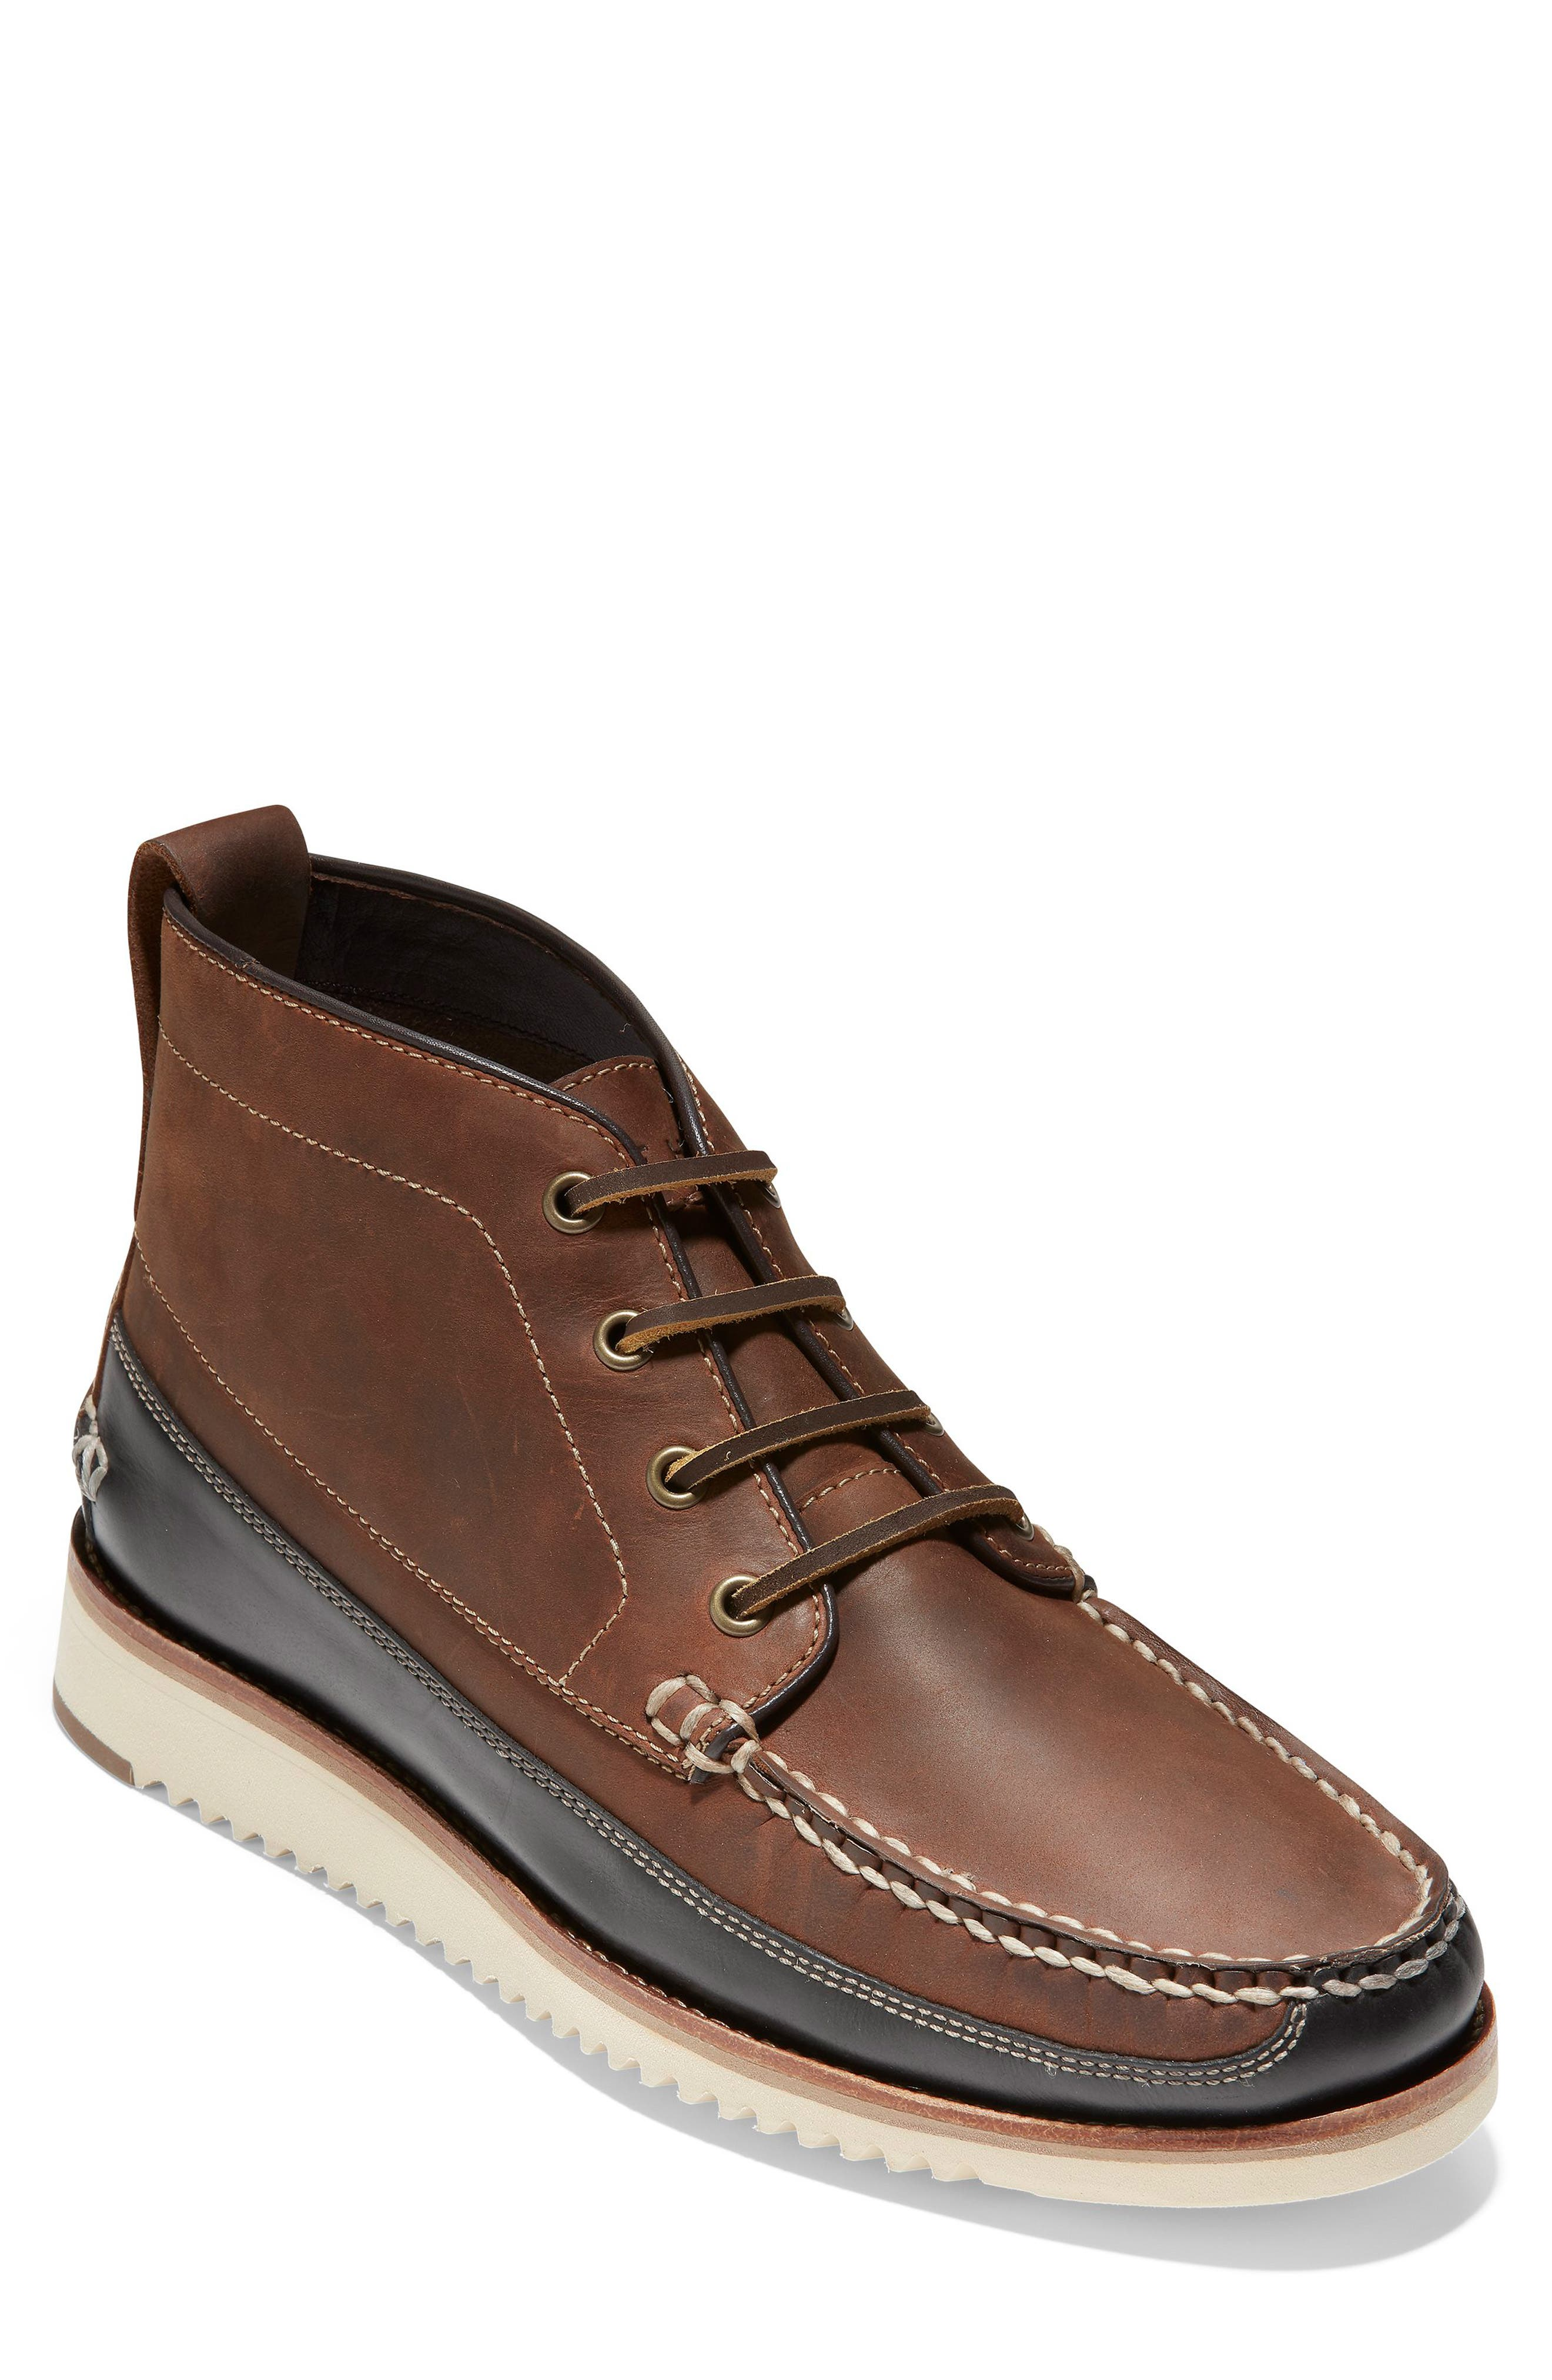 Cole Haan Pinch Moc Toe Waterproof Boot- Brown